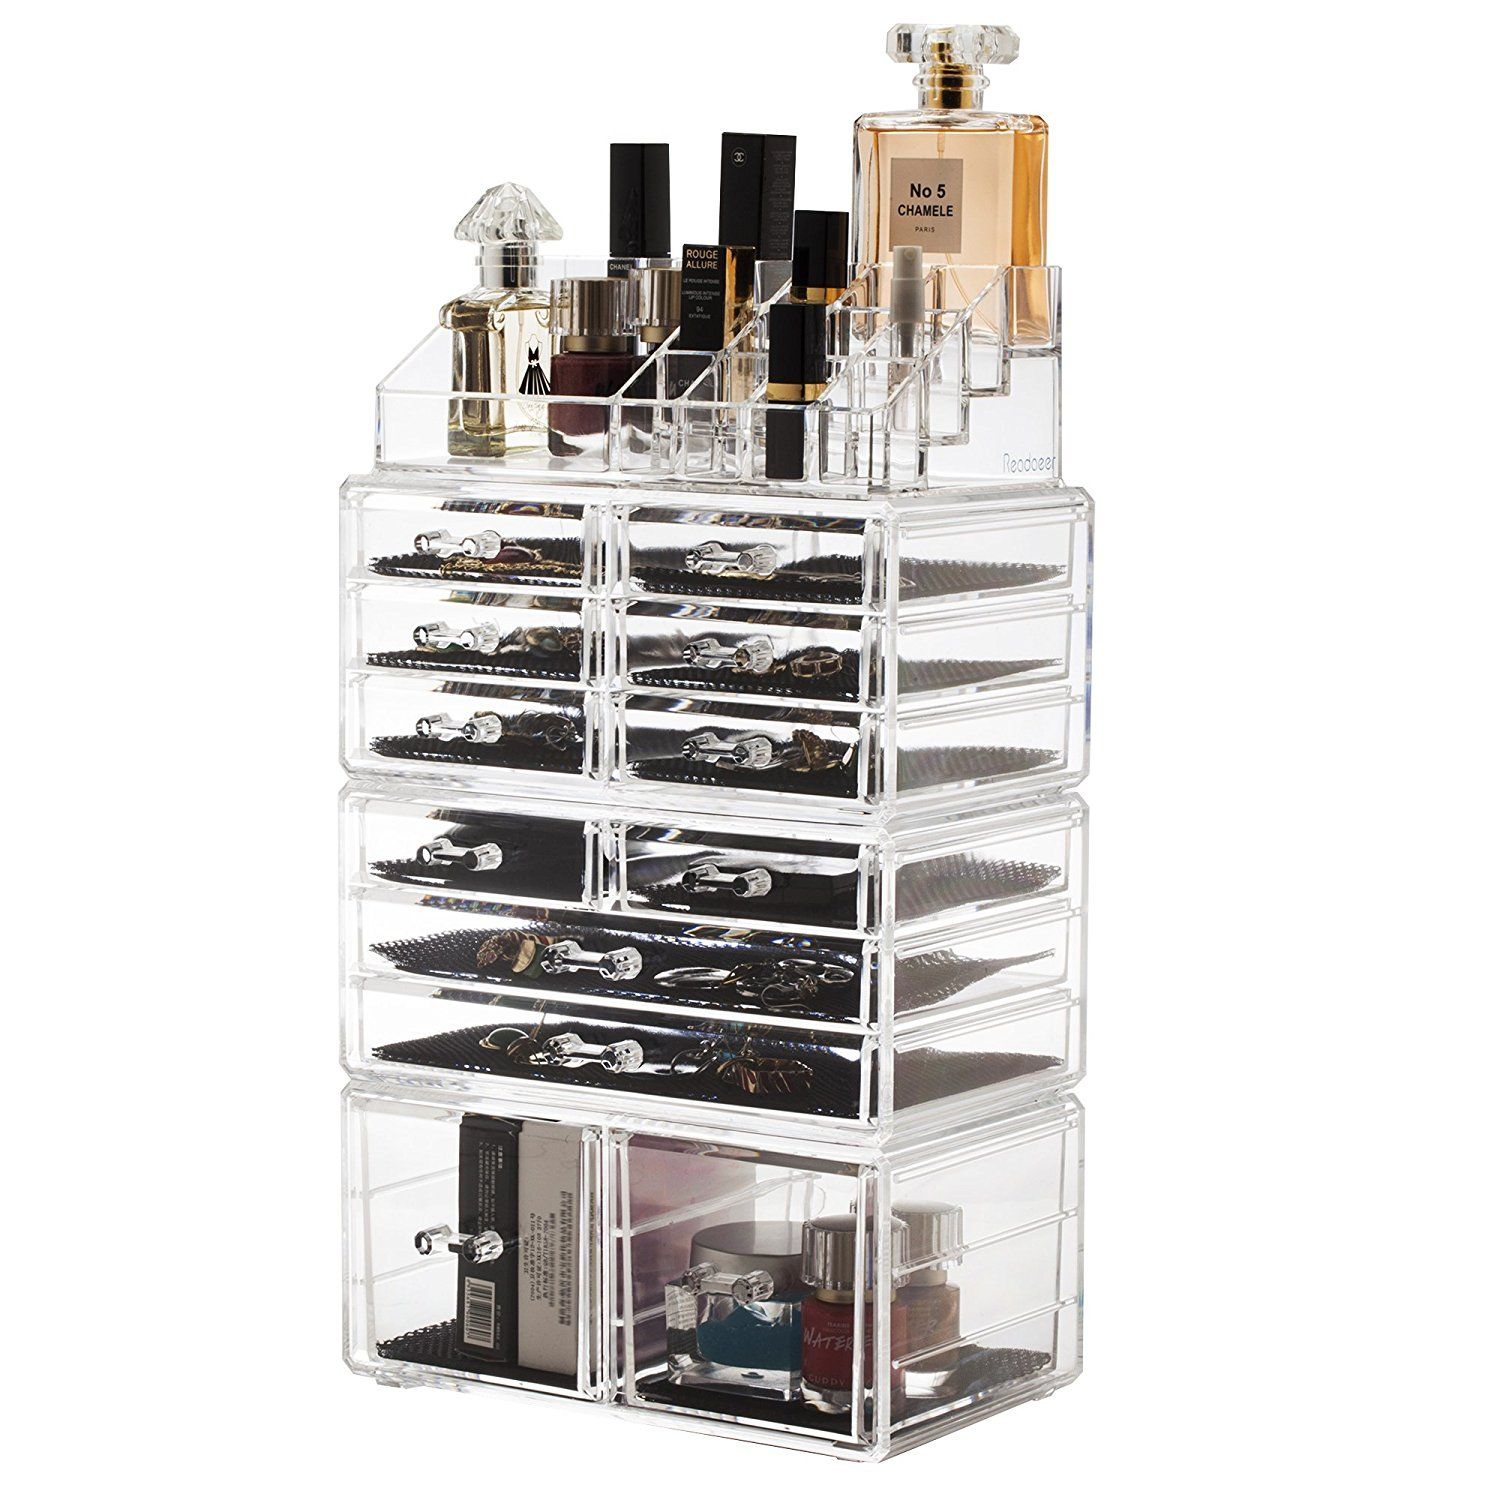 Readaeer Acrylic Makeup Cosmetic Organizer Storage Drawers Display ...